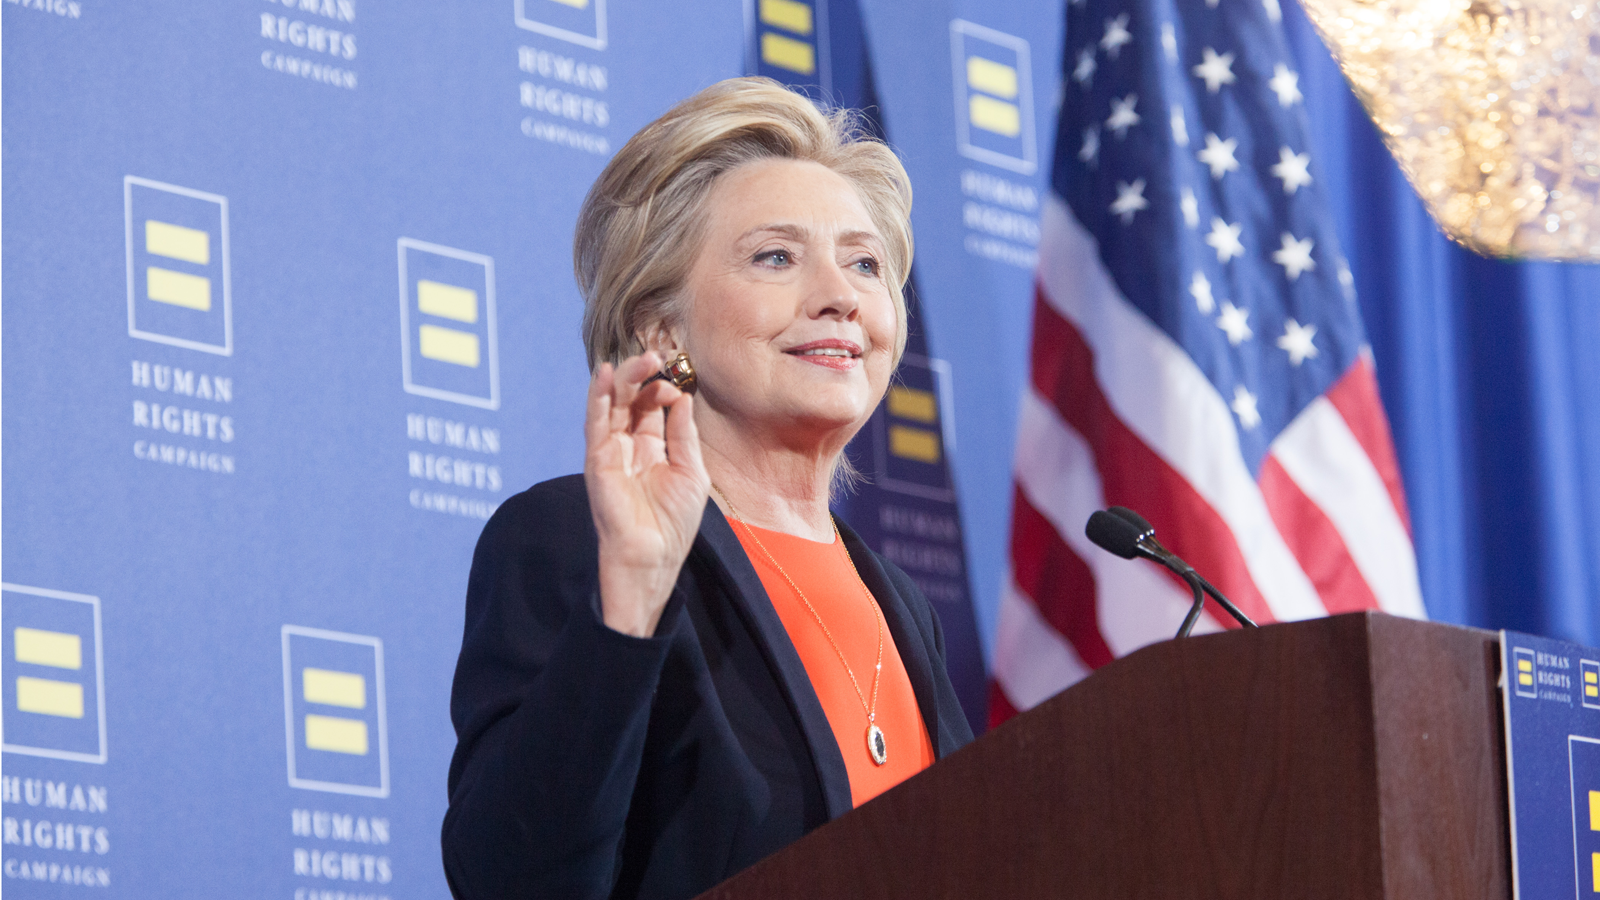 human rights campaign endorses hillary clinton for president human